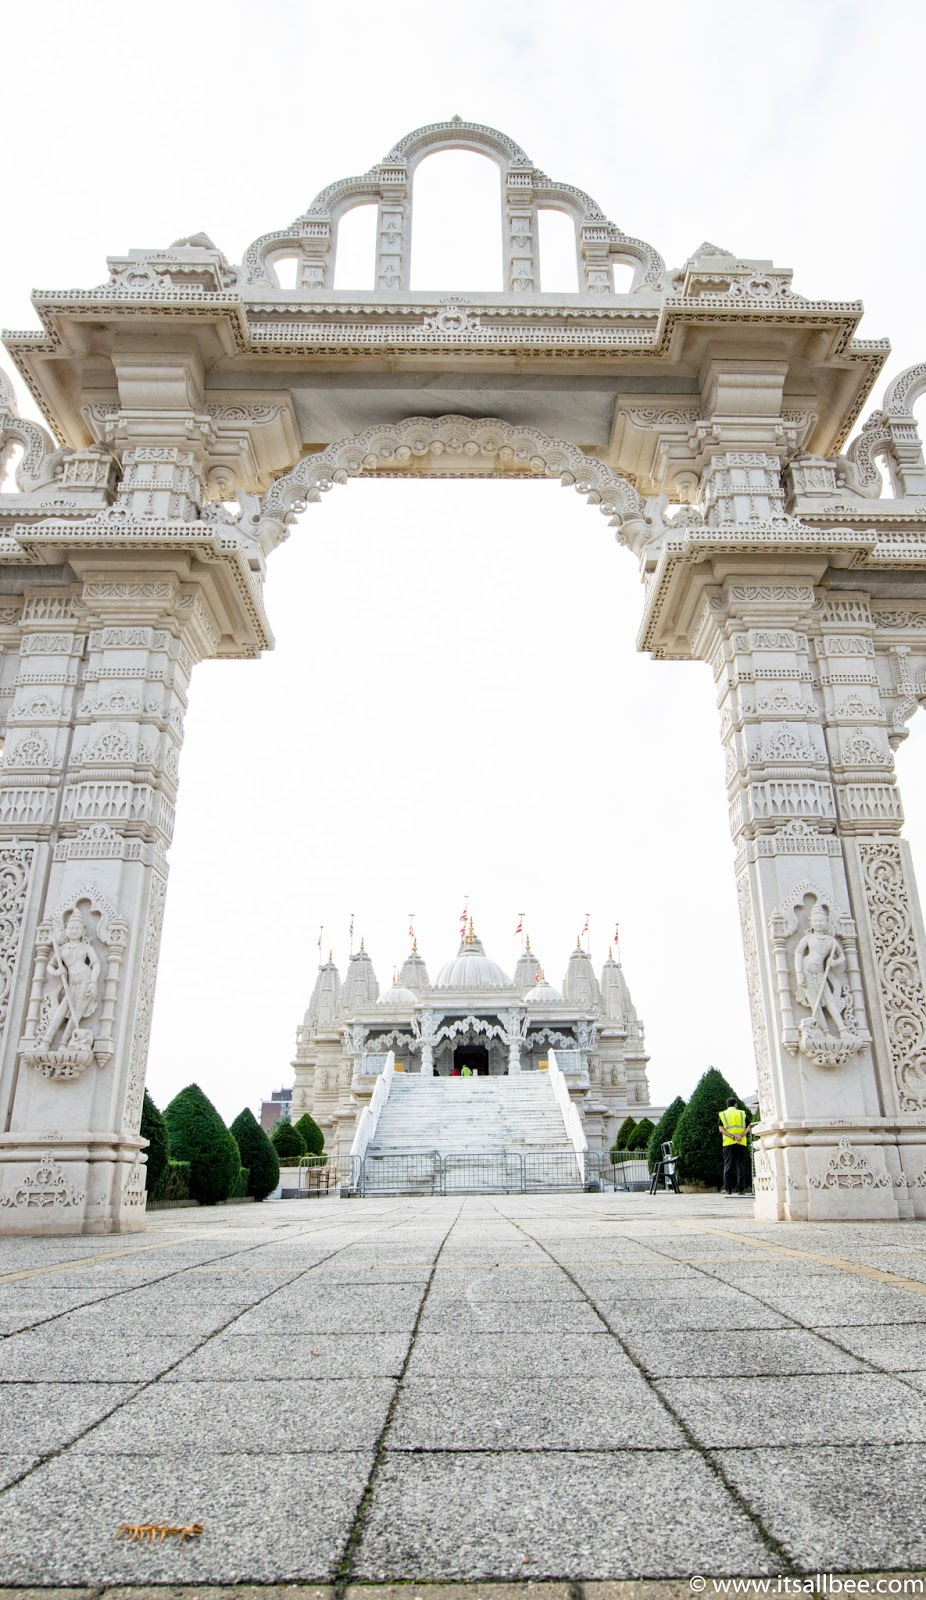 London's Insanely Beautiful Temple You Have To See - Neasden temple or Baps Shri-Swaninarayan Mandir